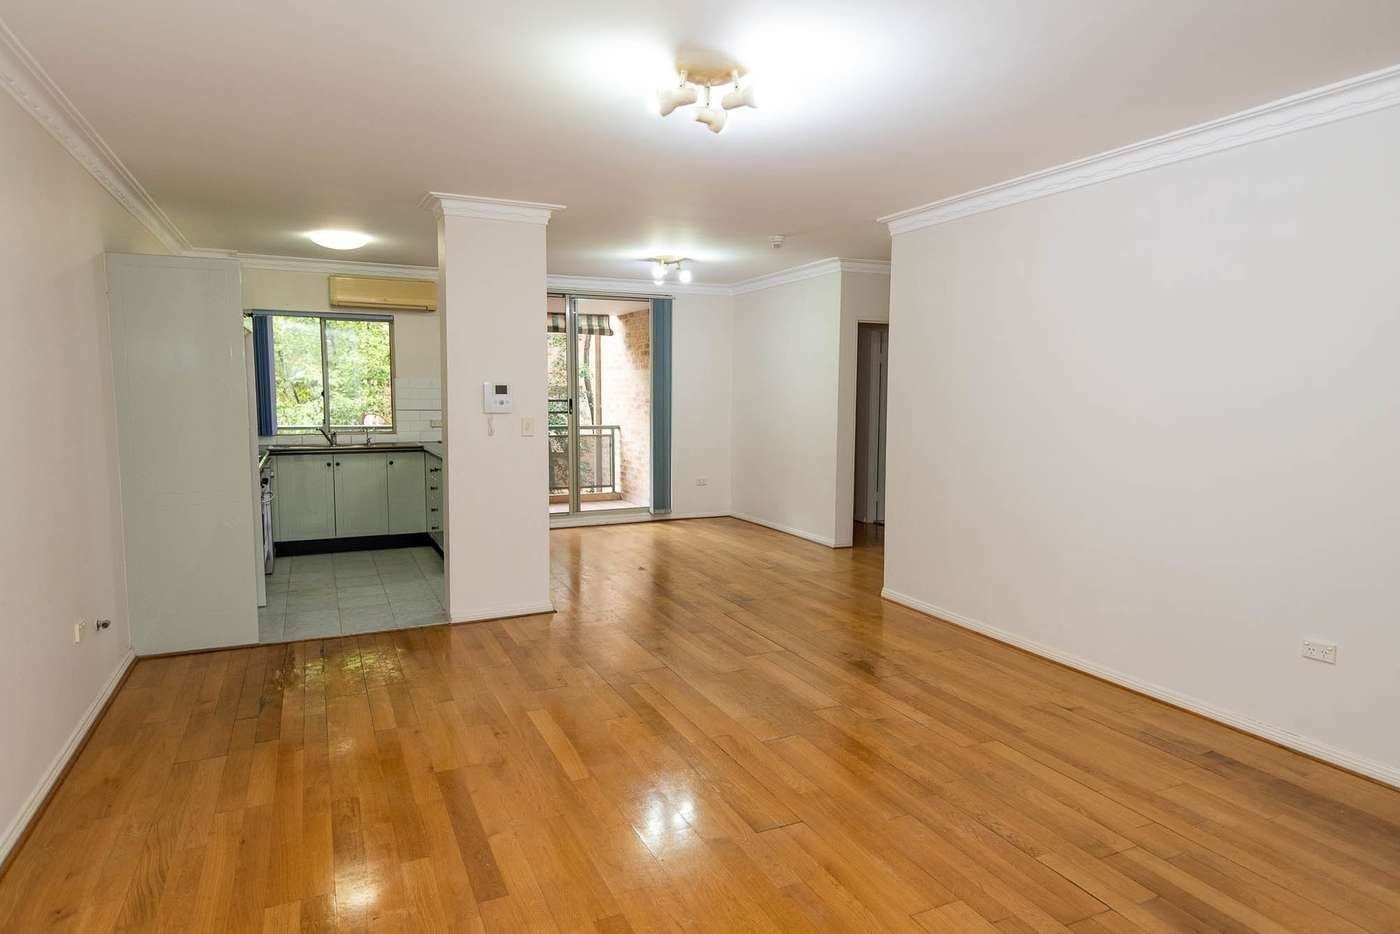 Main view of Homely apartment listing, 5/51-57 Buller Street, North Parramatta NSW 2151